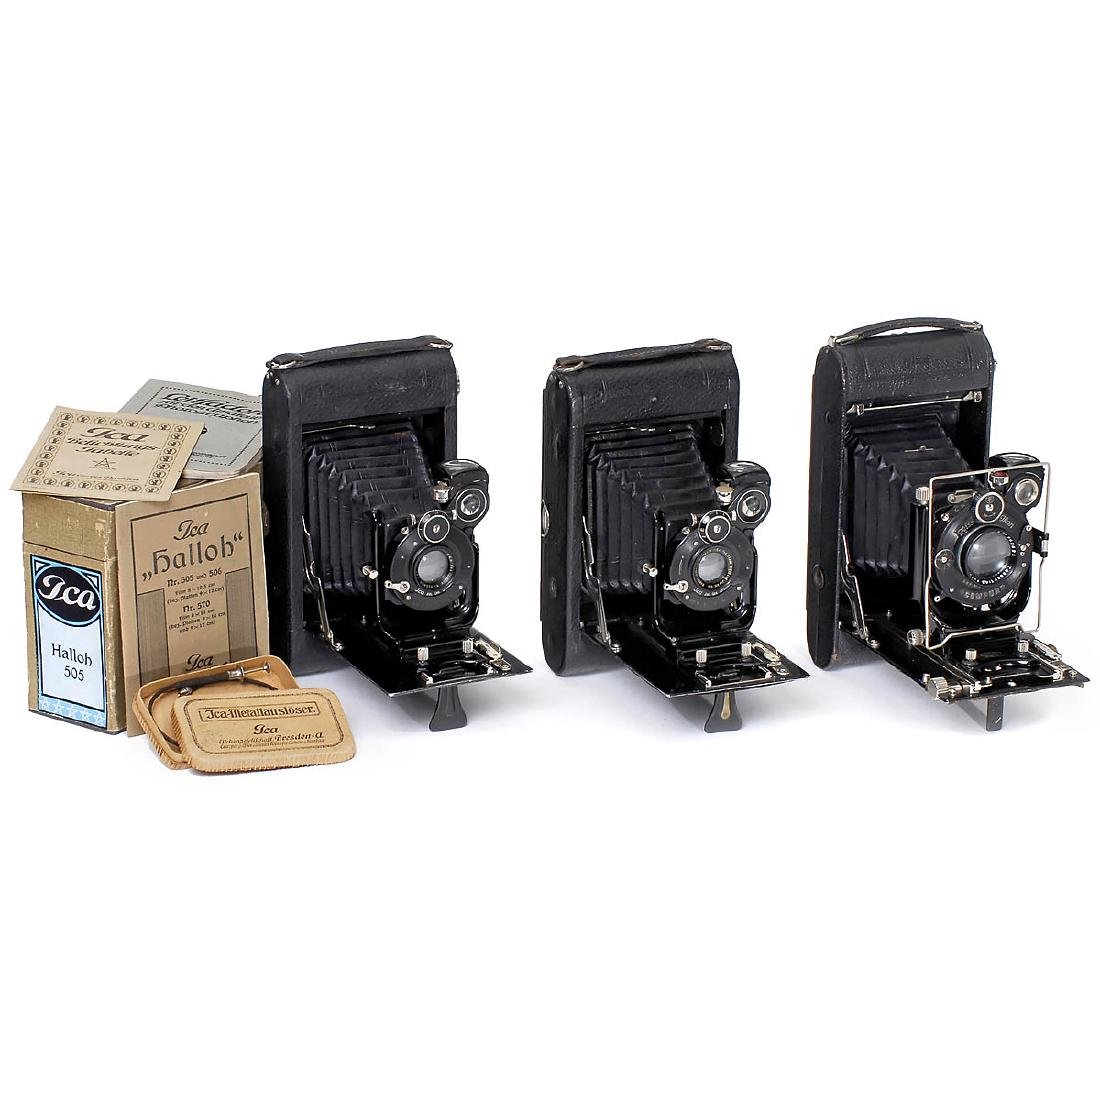 3 Rollfilm Cameras by Ica and Zeiss